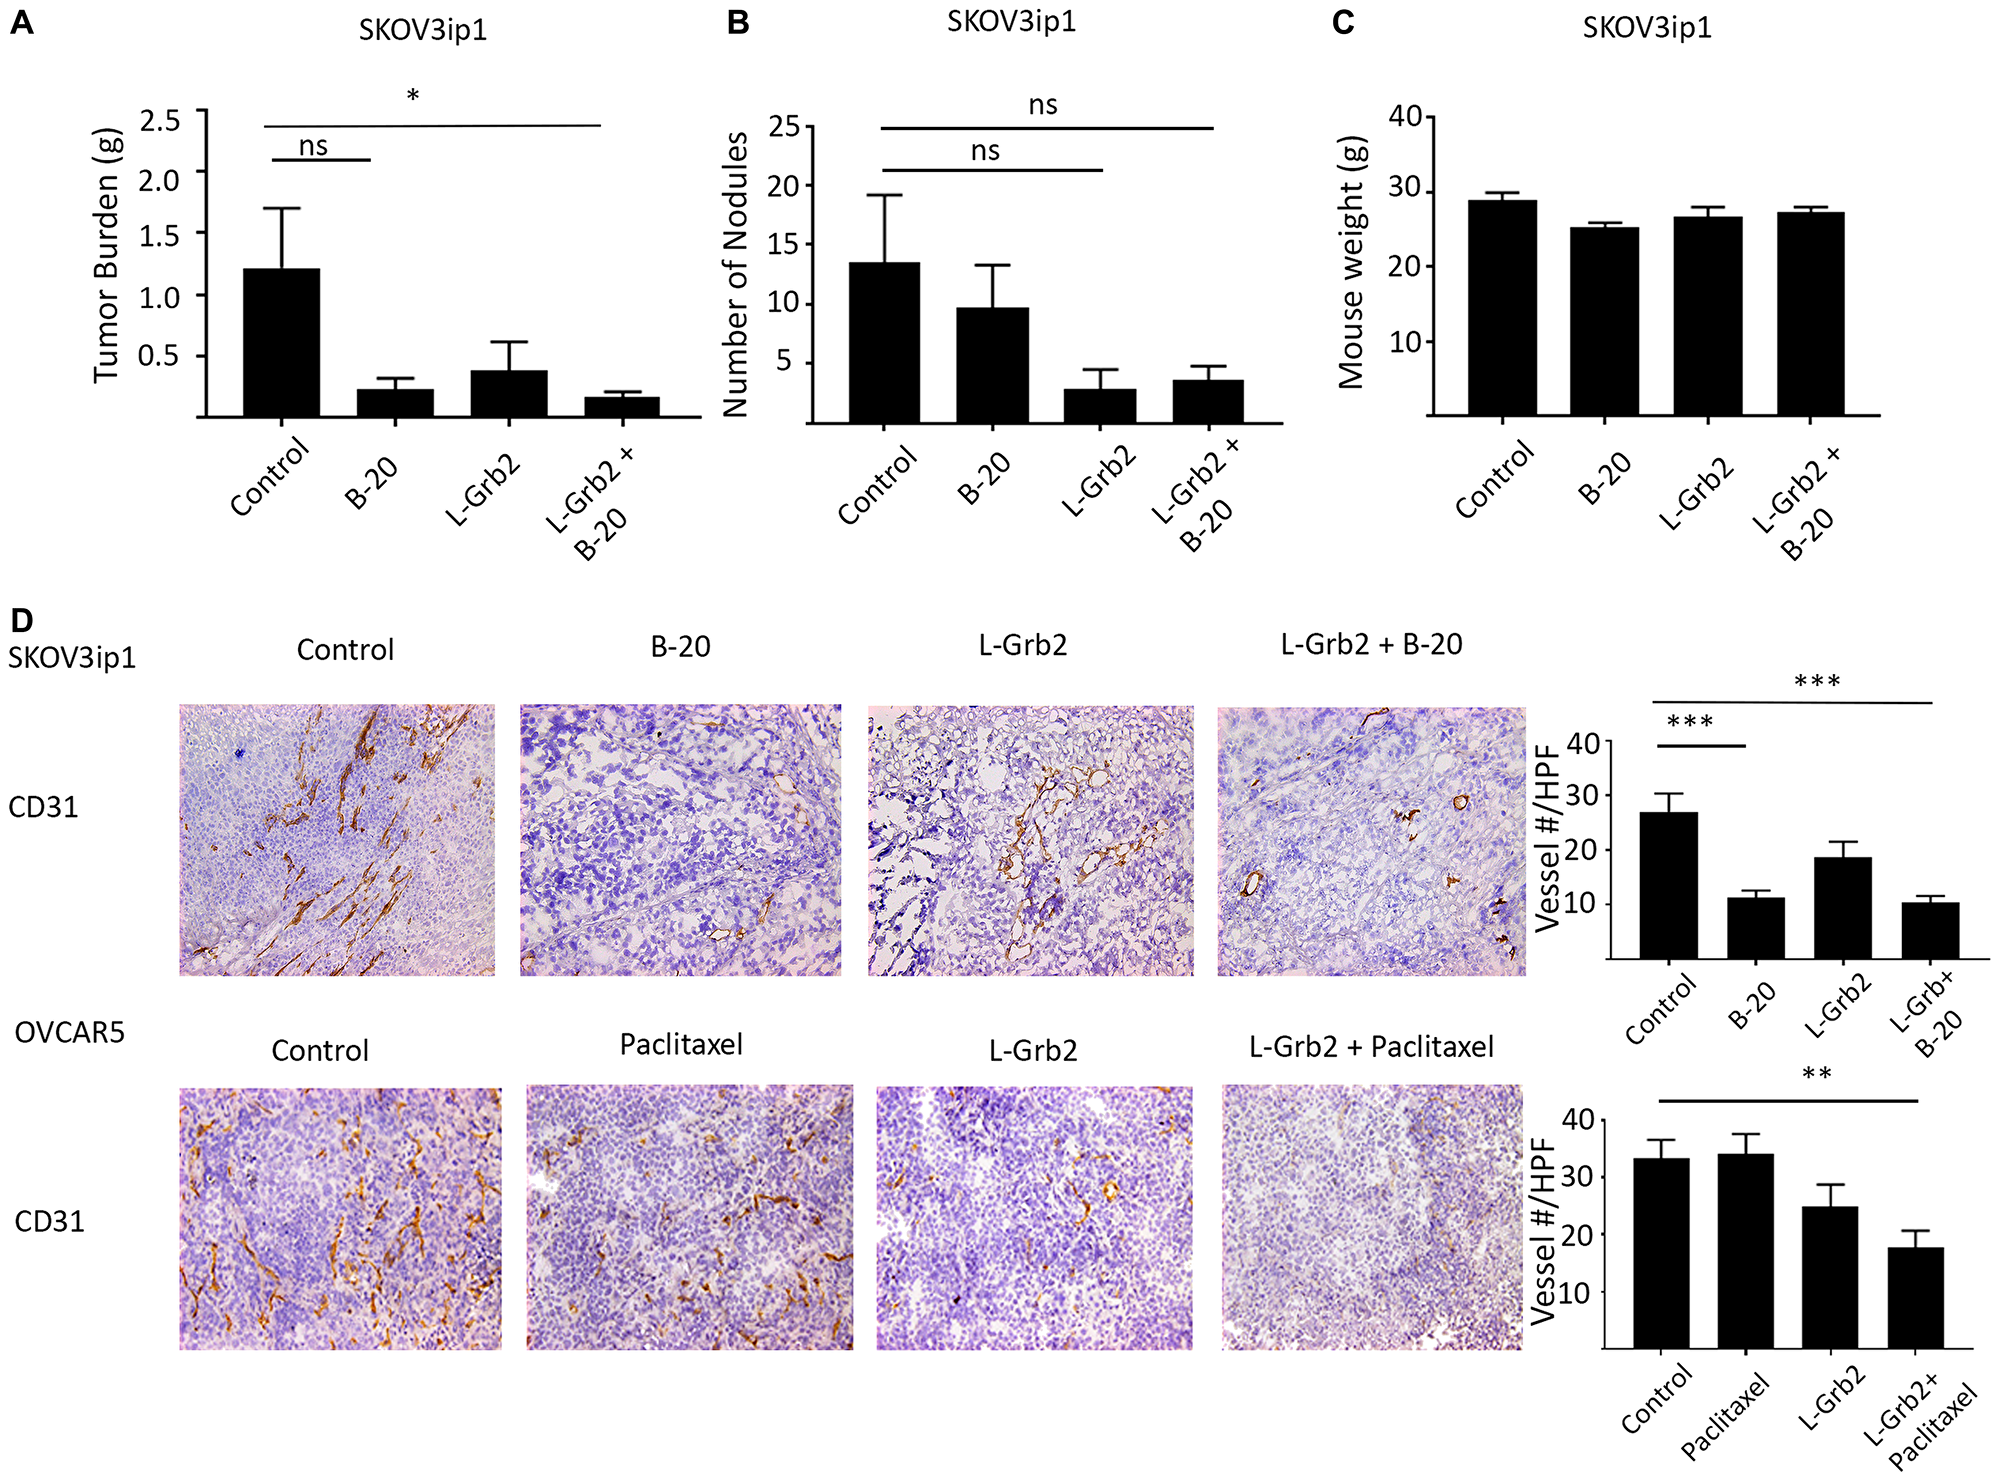 In vivo effects of treatment with L-Grb2 in combination with anti-angiogenic therapy in an ovarian tumor model.